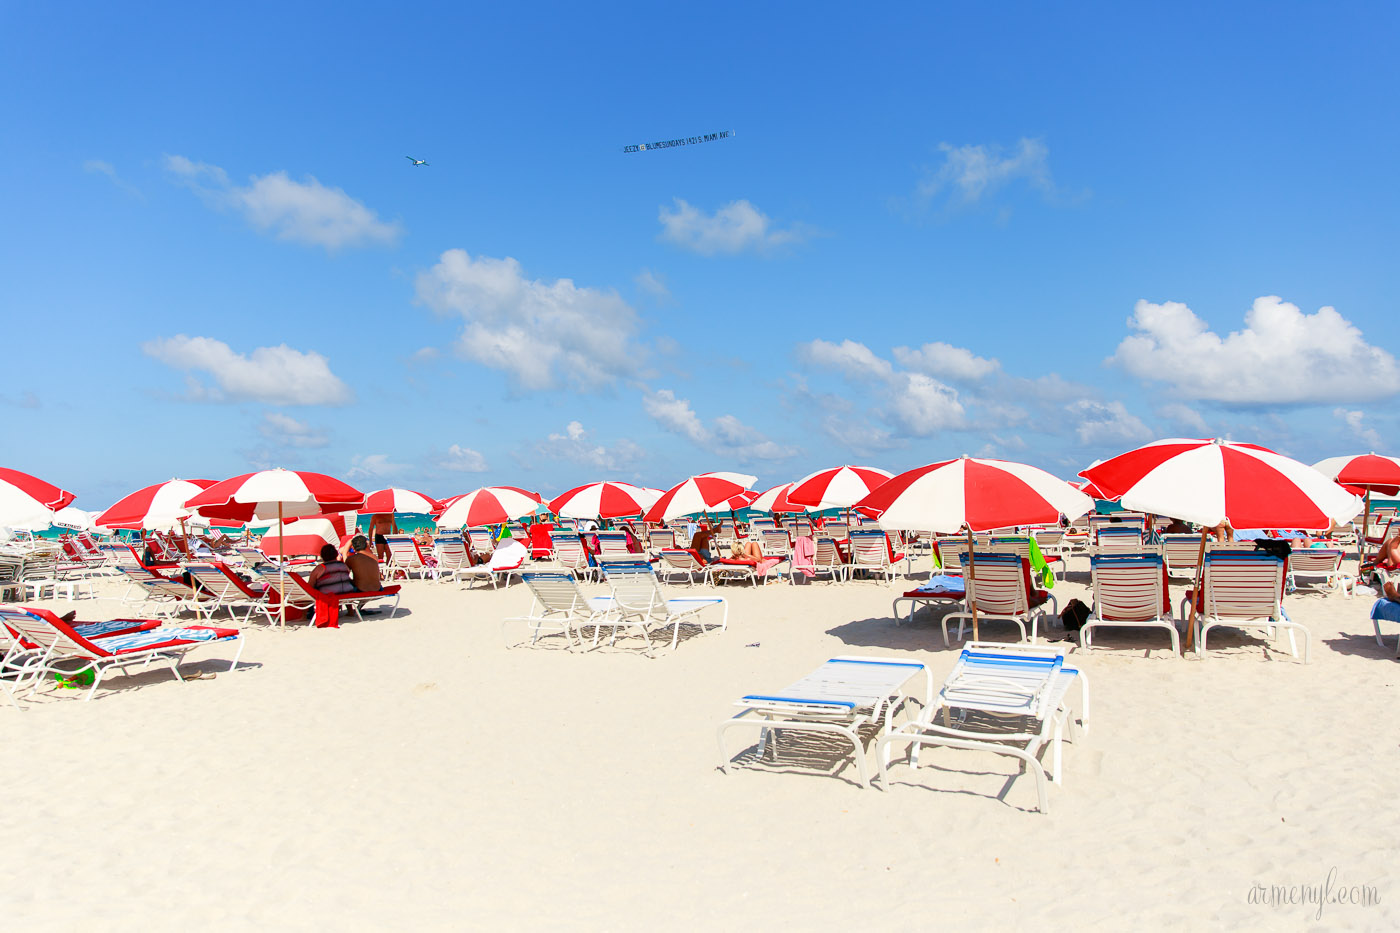 Beach Umbrellas at Miami Beach Florida photo by Armenyl.com